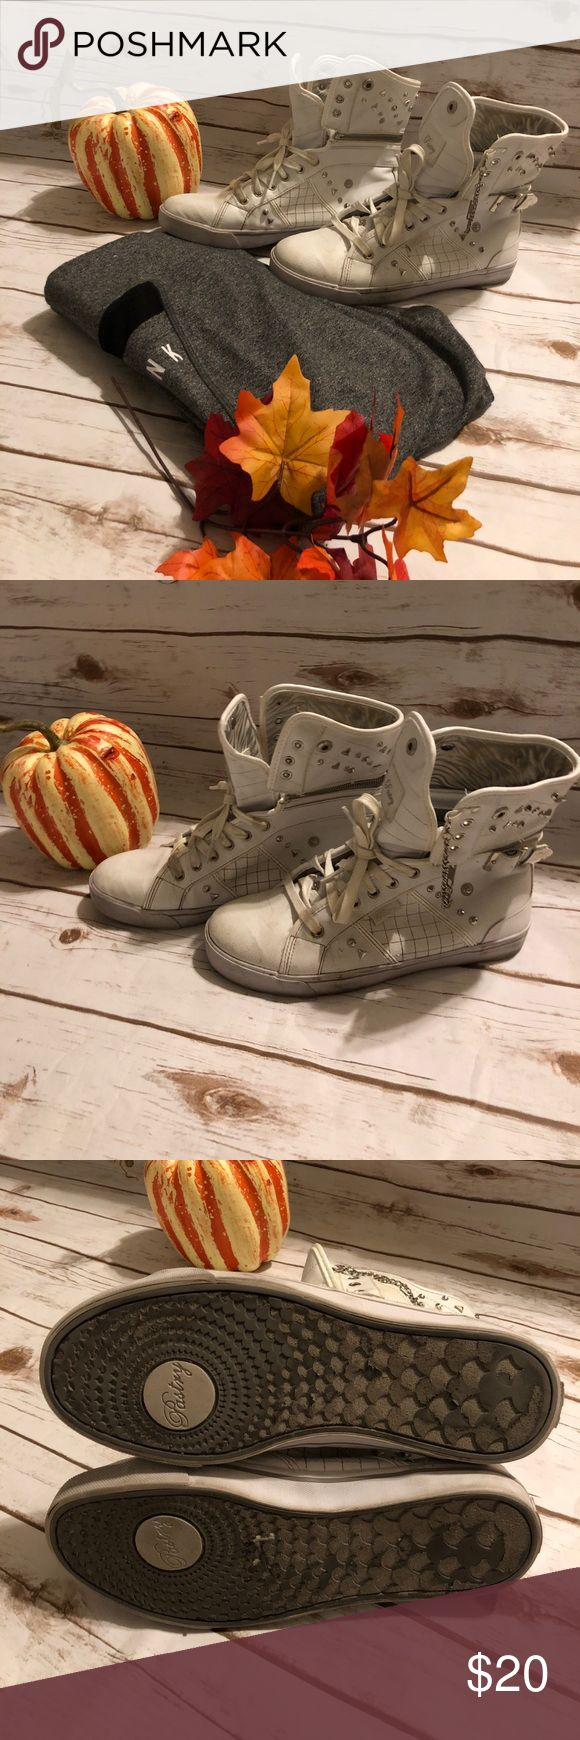 White pastry high top sneaker size 8.5 Used condition still plenty of life left. Fun high top sneaker. pastry Shoes Sneakers